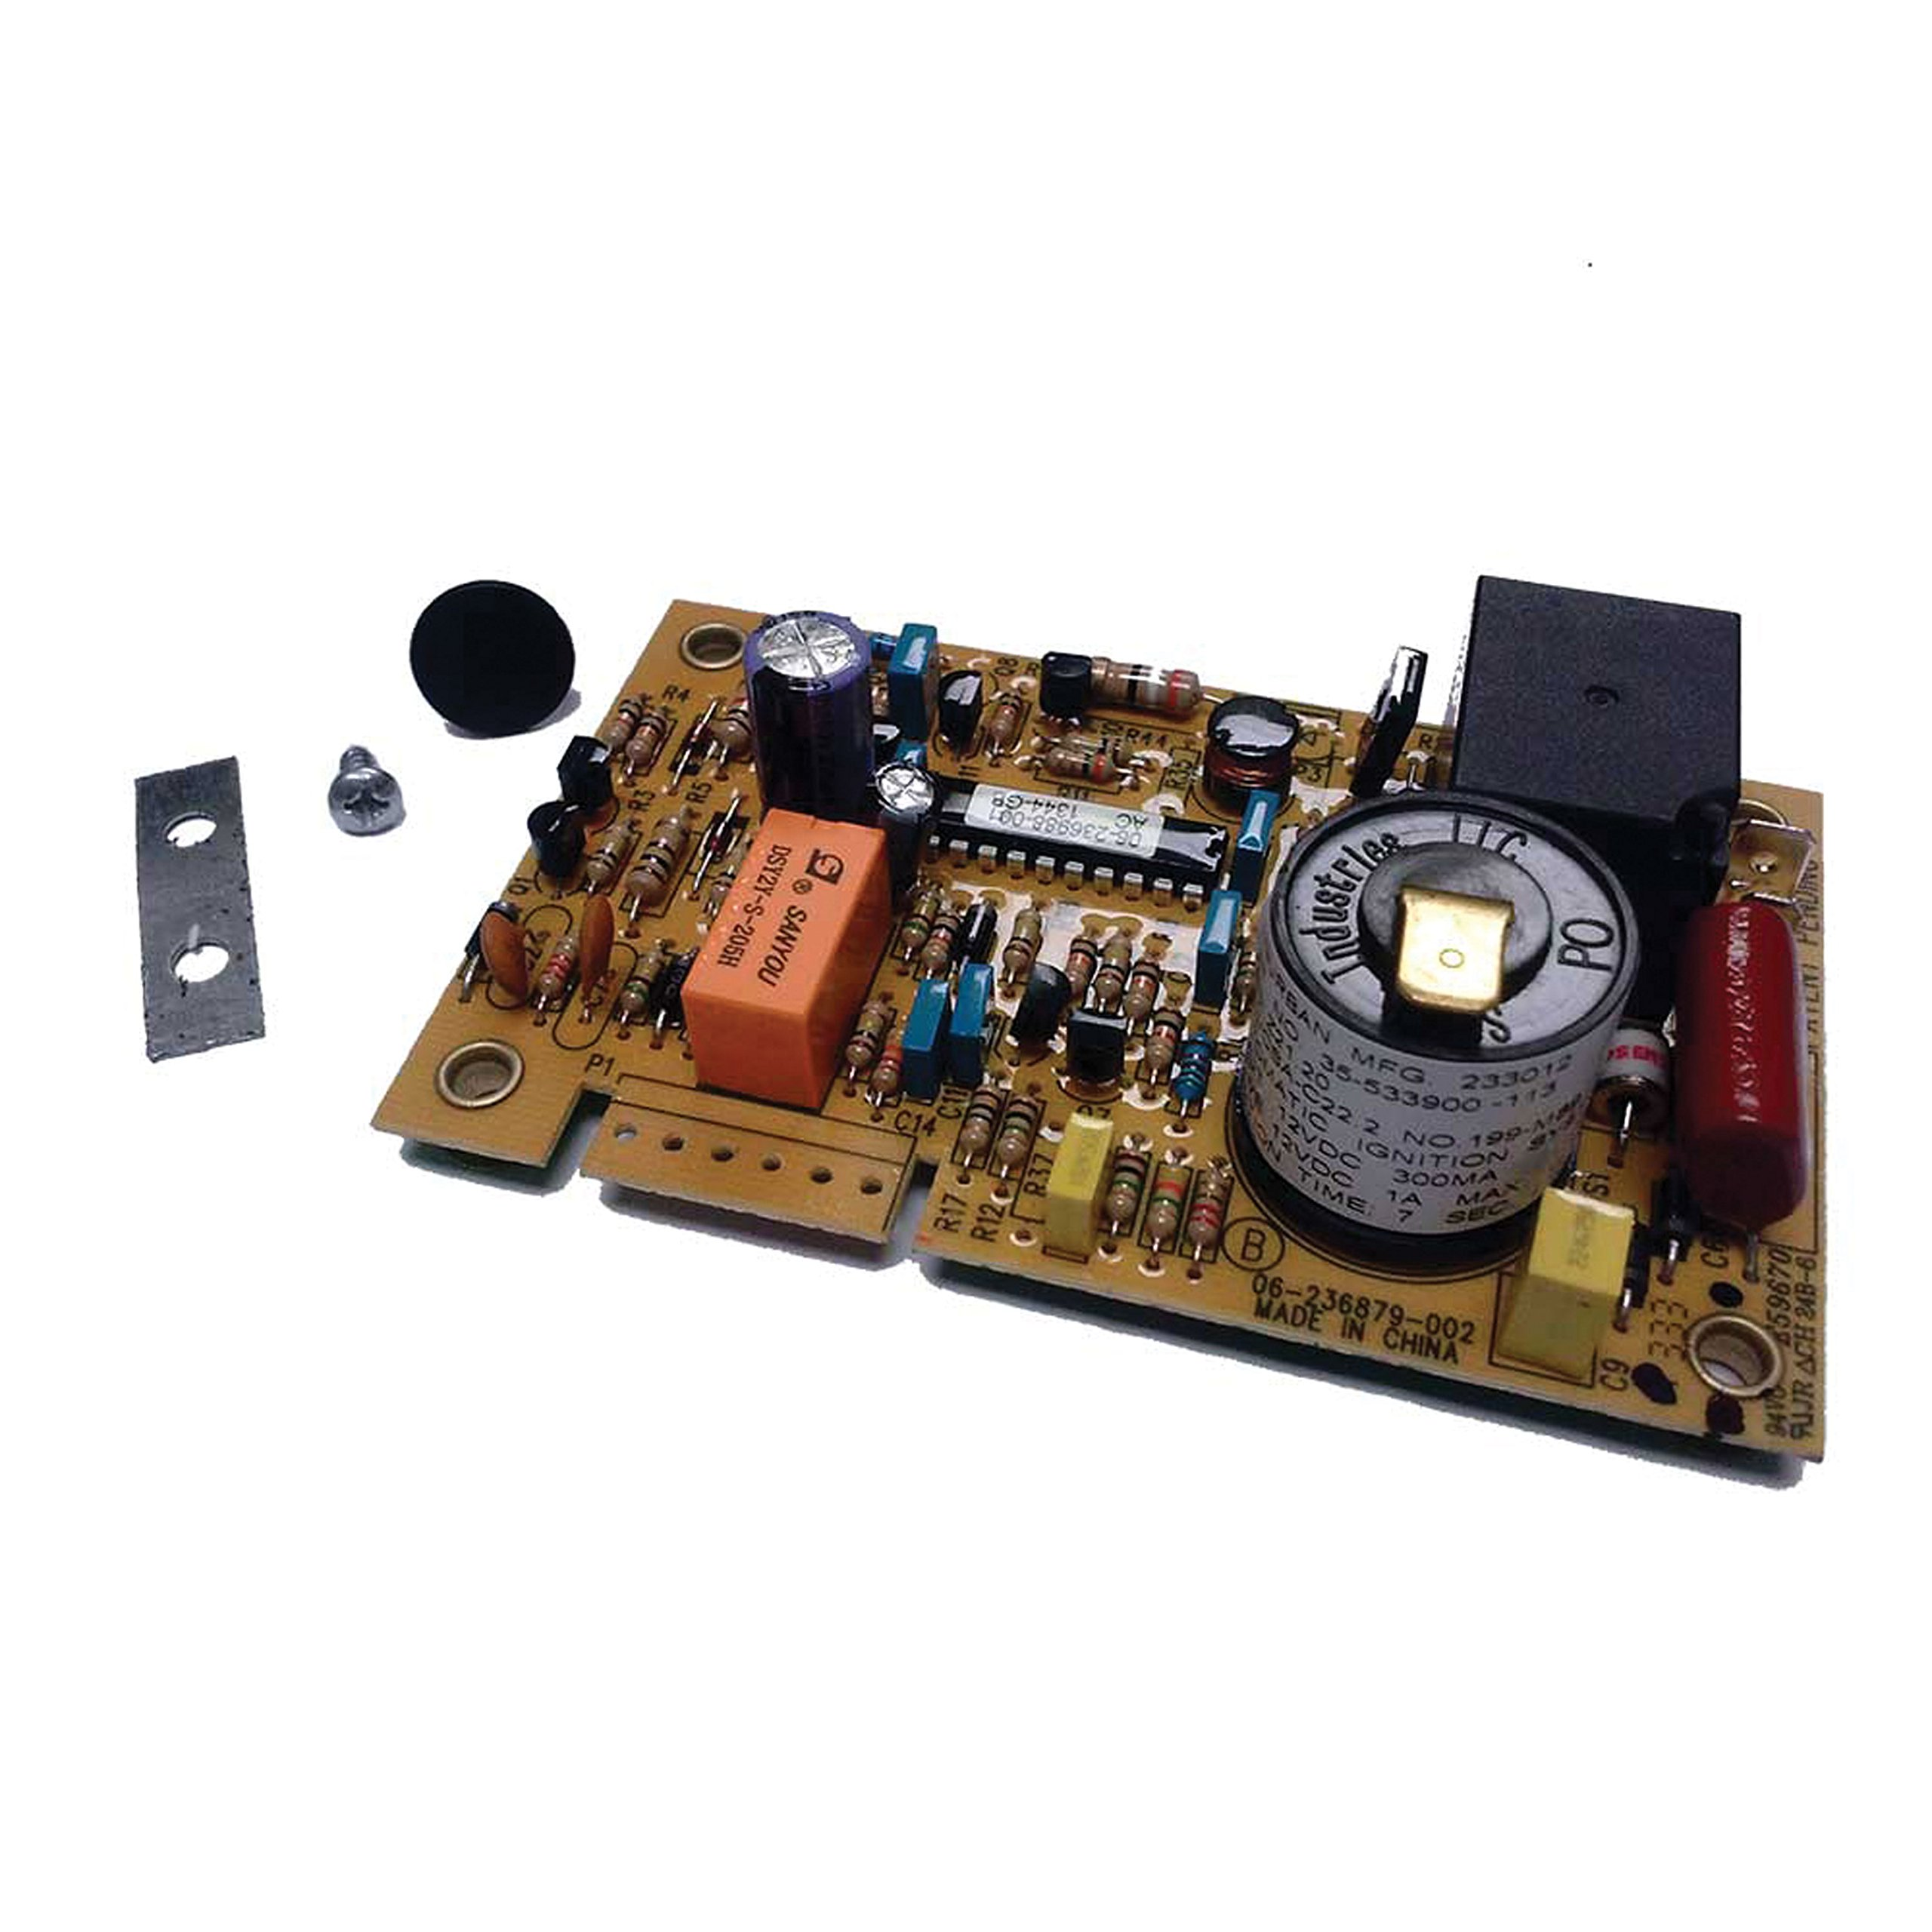 Suburban Sb521099 3g Furnace Fan Control Board Automotive Objectives Of Circuit Printing The Primary Objective